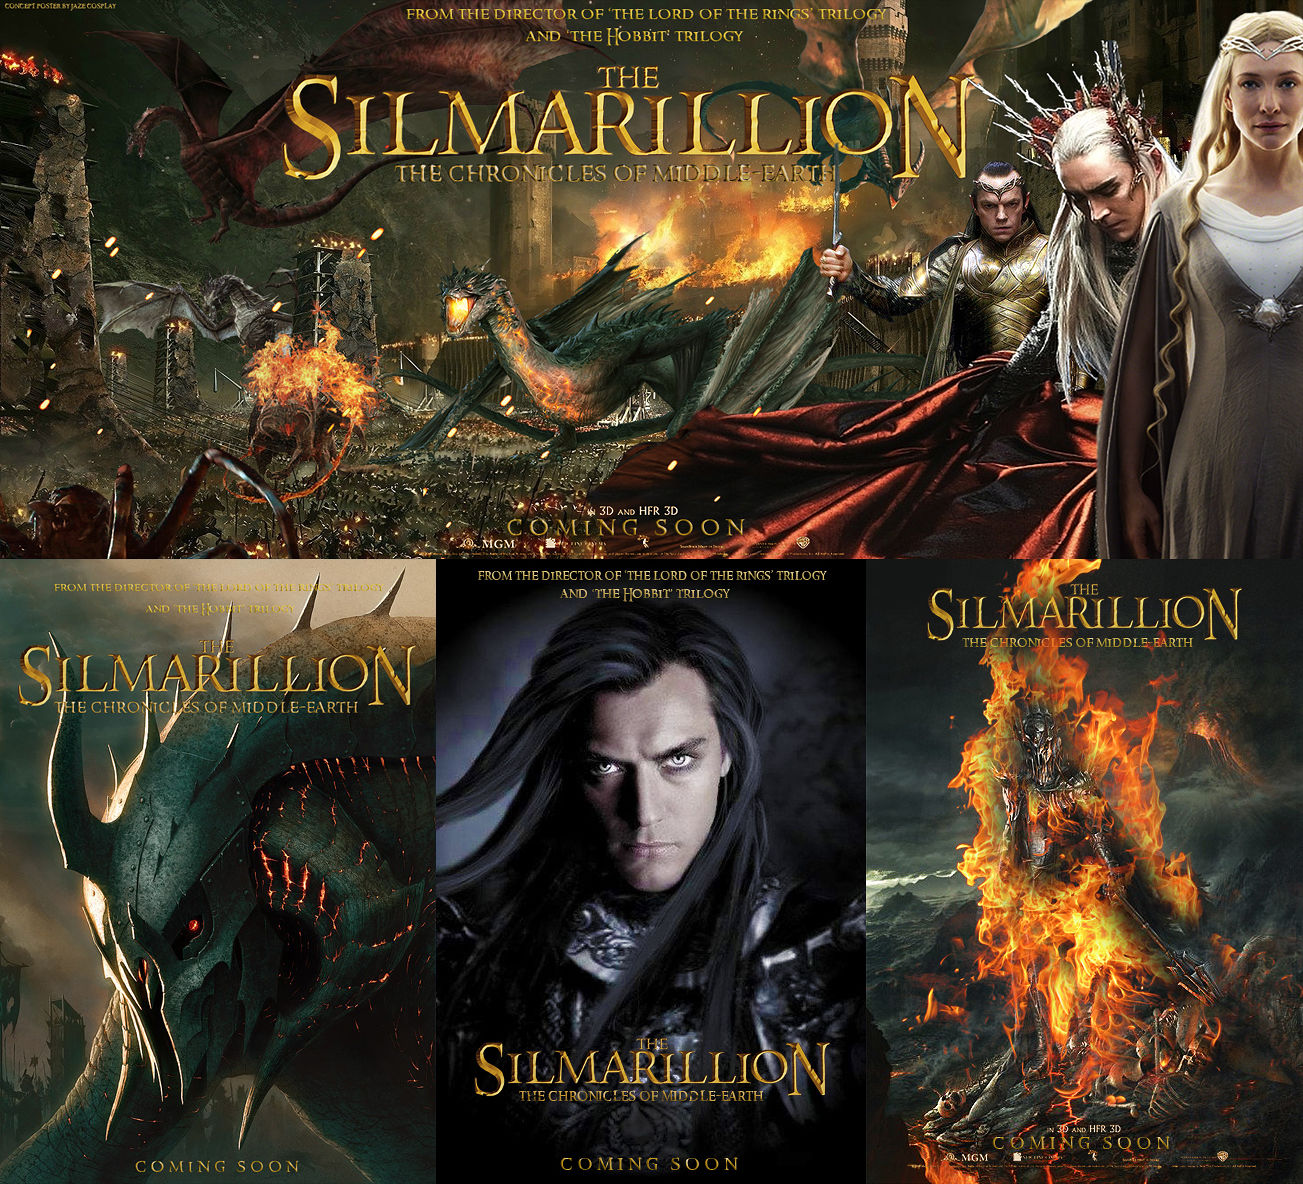 thesilmarillion-the-journey-to-middle-earth-is-not-over-could-peter-jackson-actually-get-the-rights-to-the-silmarillion-jpeg-230421